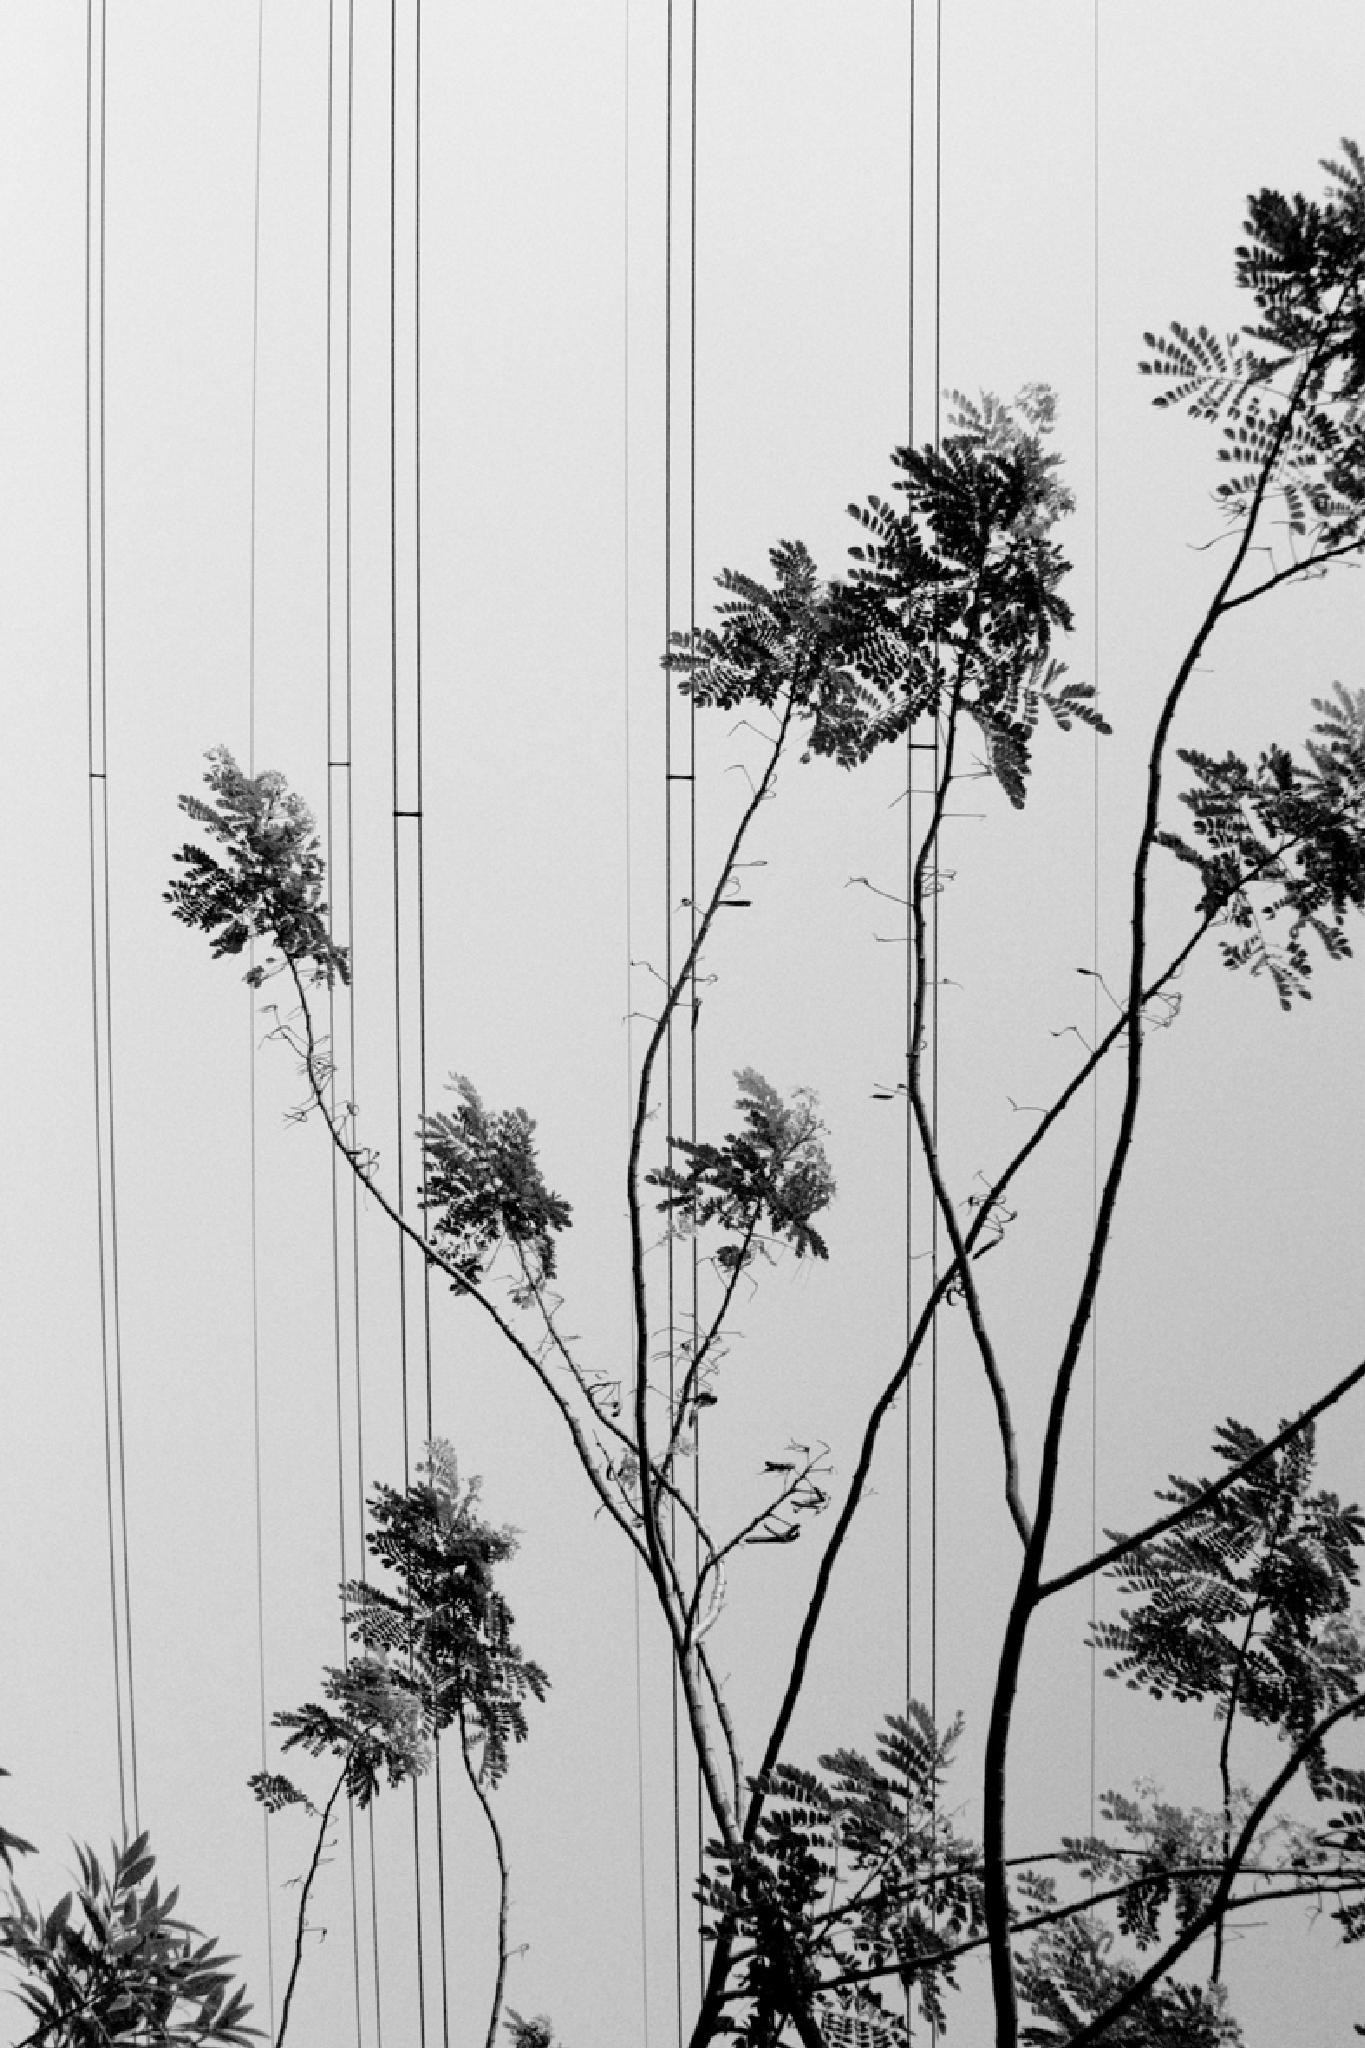 Tree & wire by anthonyphotoworks